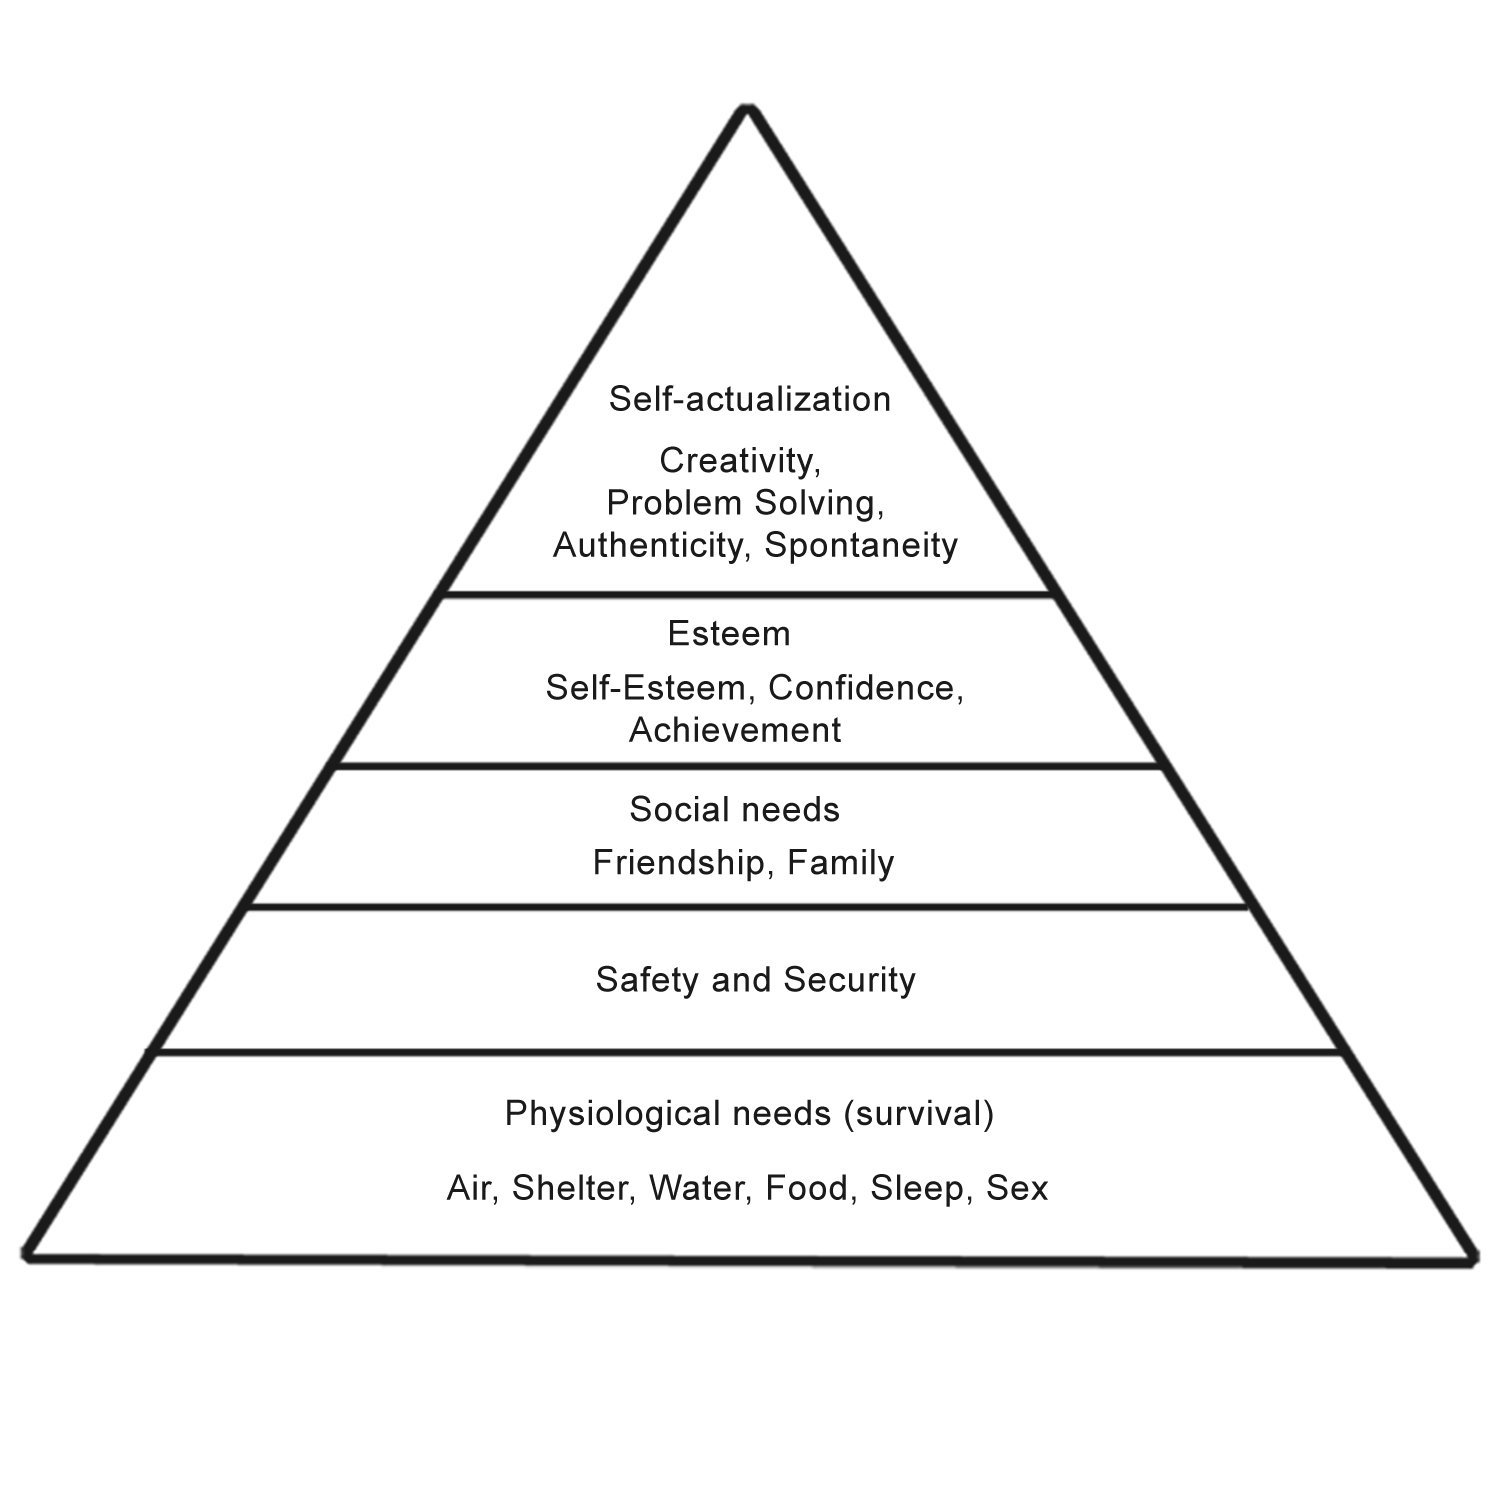 maslow-hierarchy-of-needs-diagram